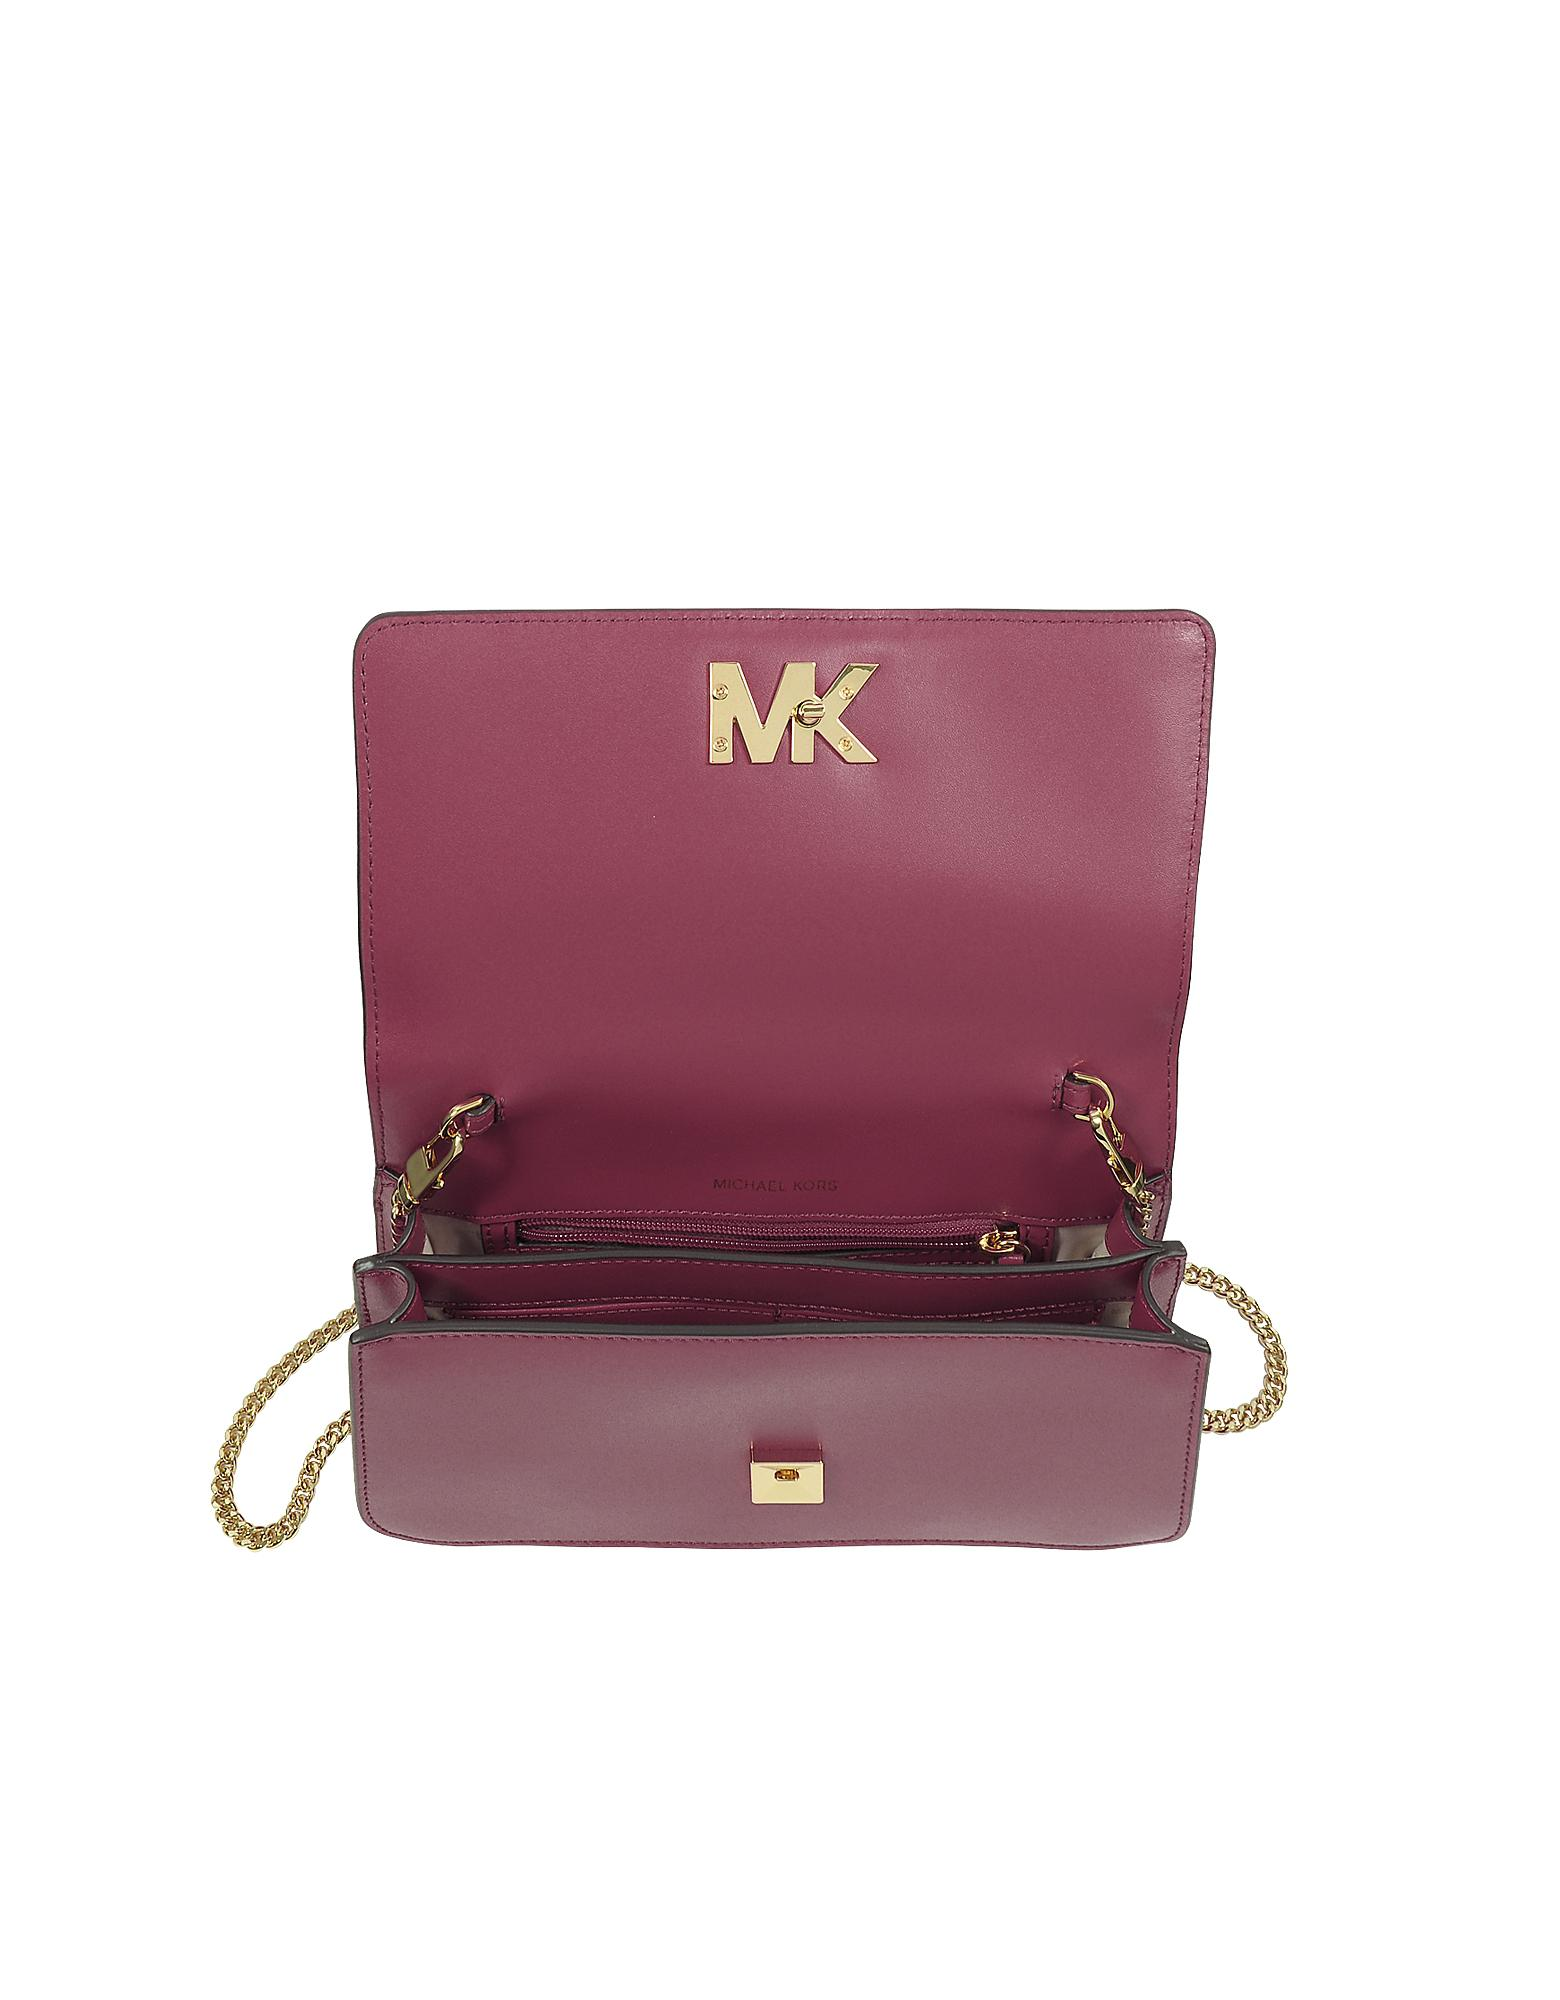 29f200b9778765 Michael Kors Mott Large Mulberry Leather Clutch in Purple - Lyst